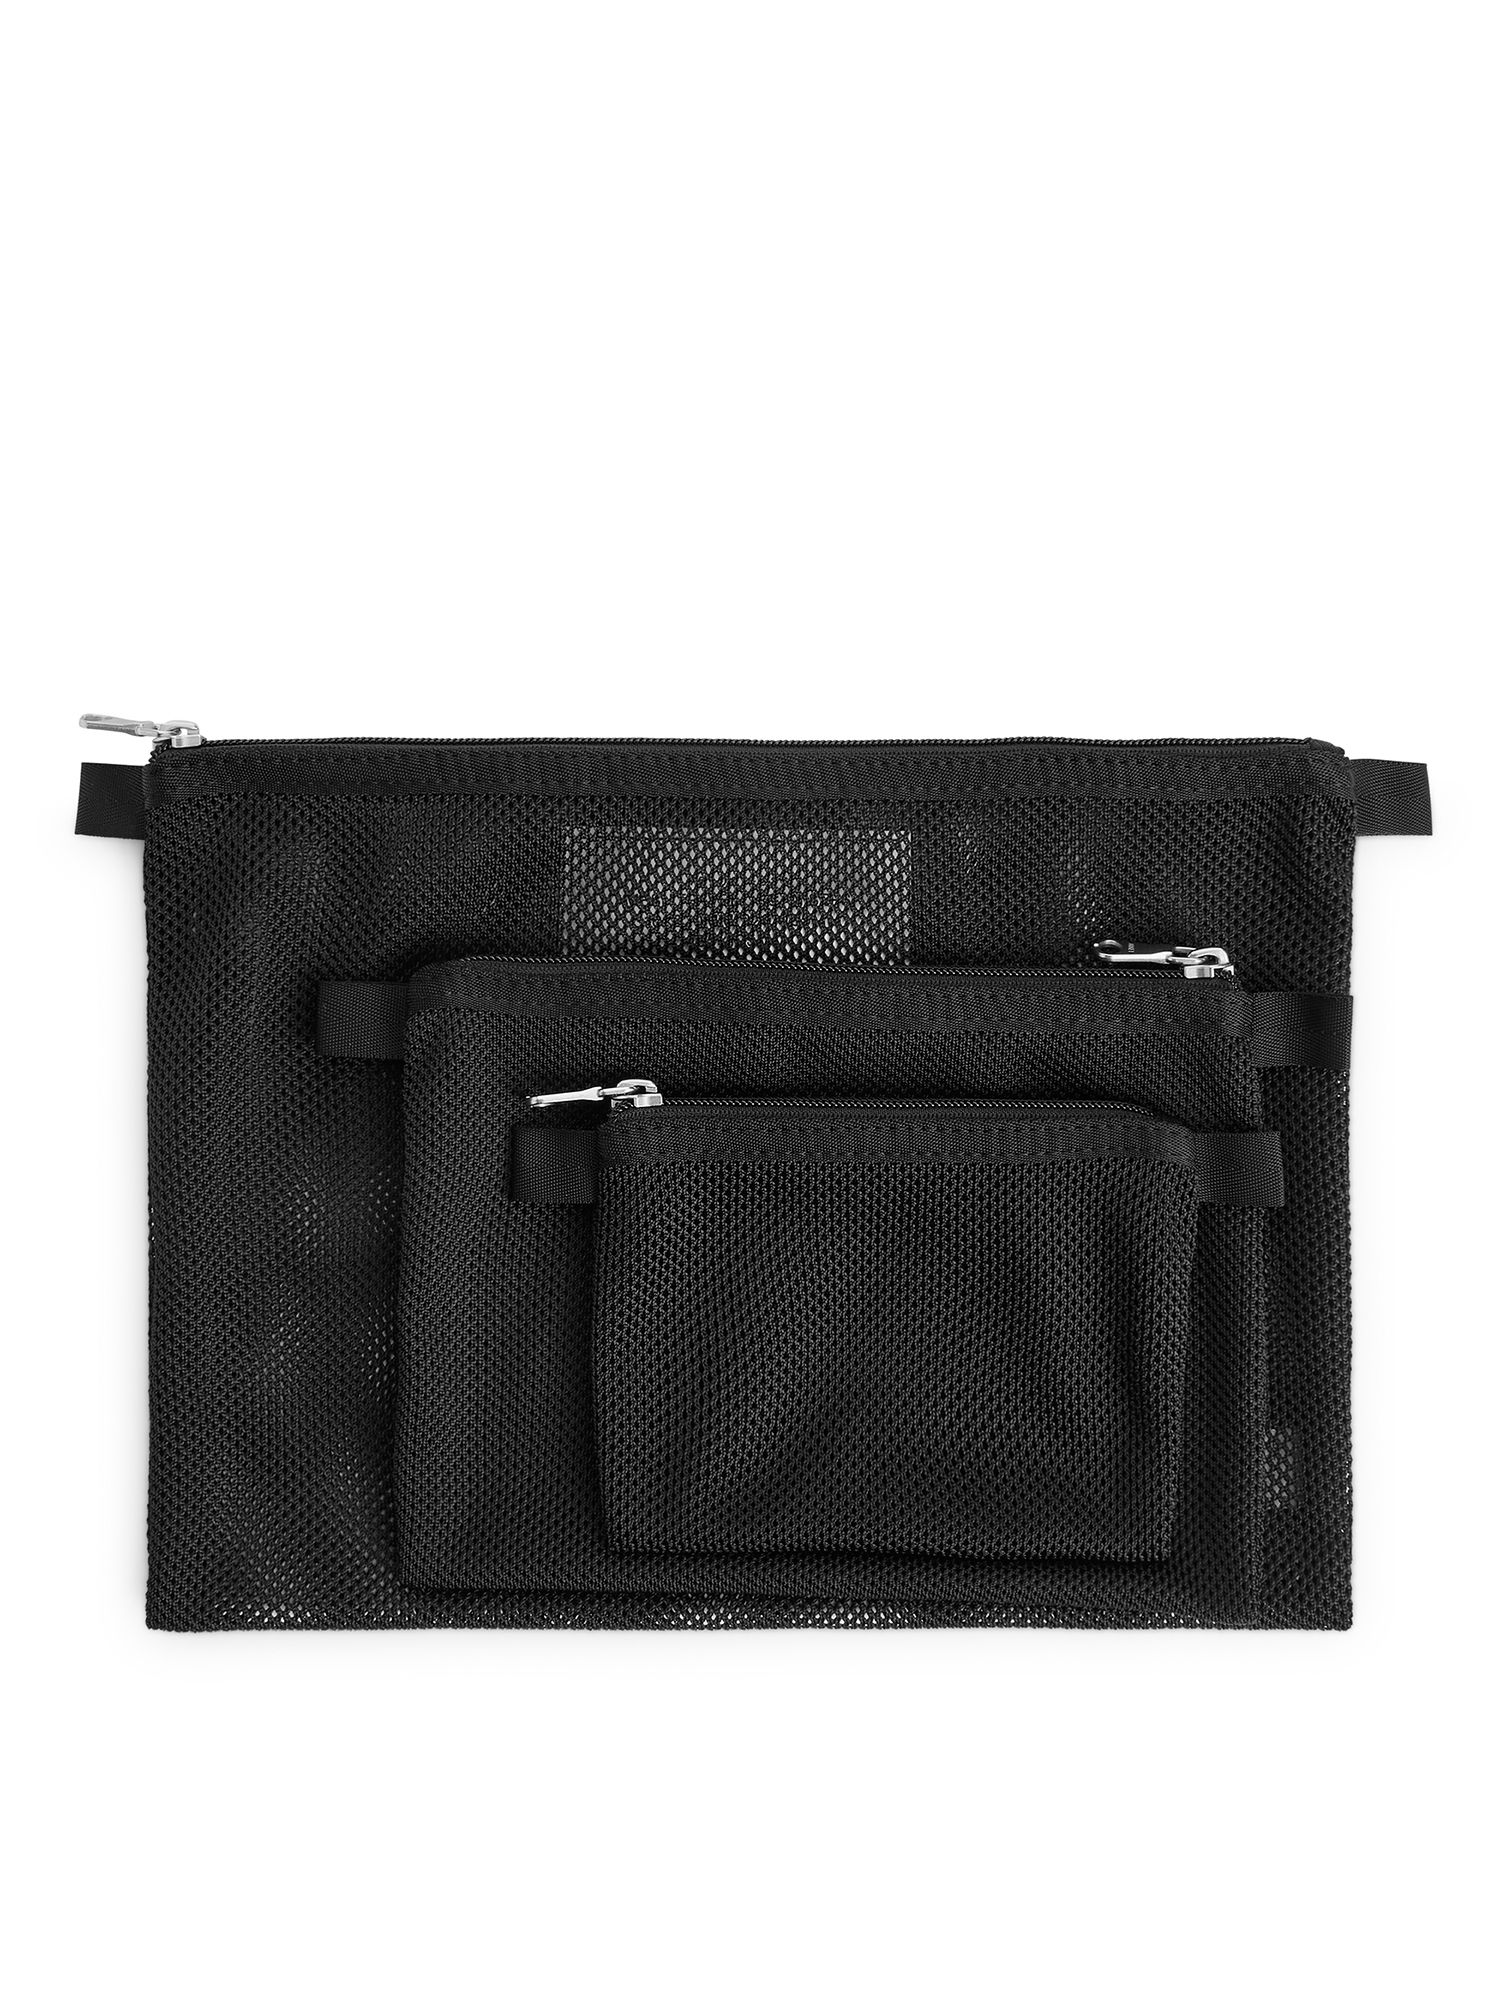 Fabric Swatch image of Arket mesh travel organisers, set of 3 in black